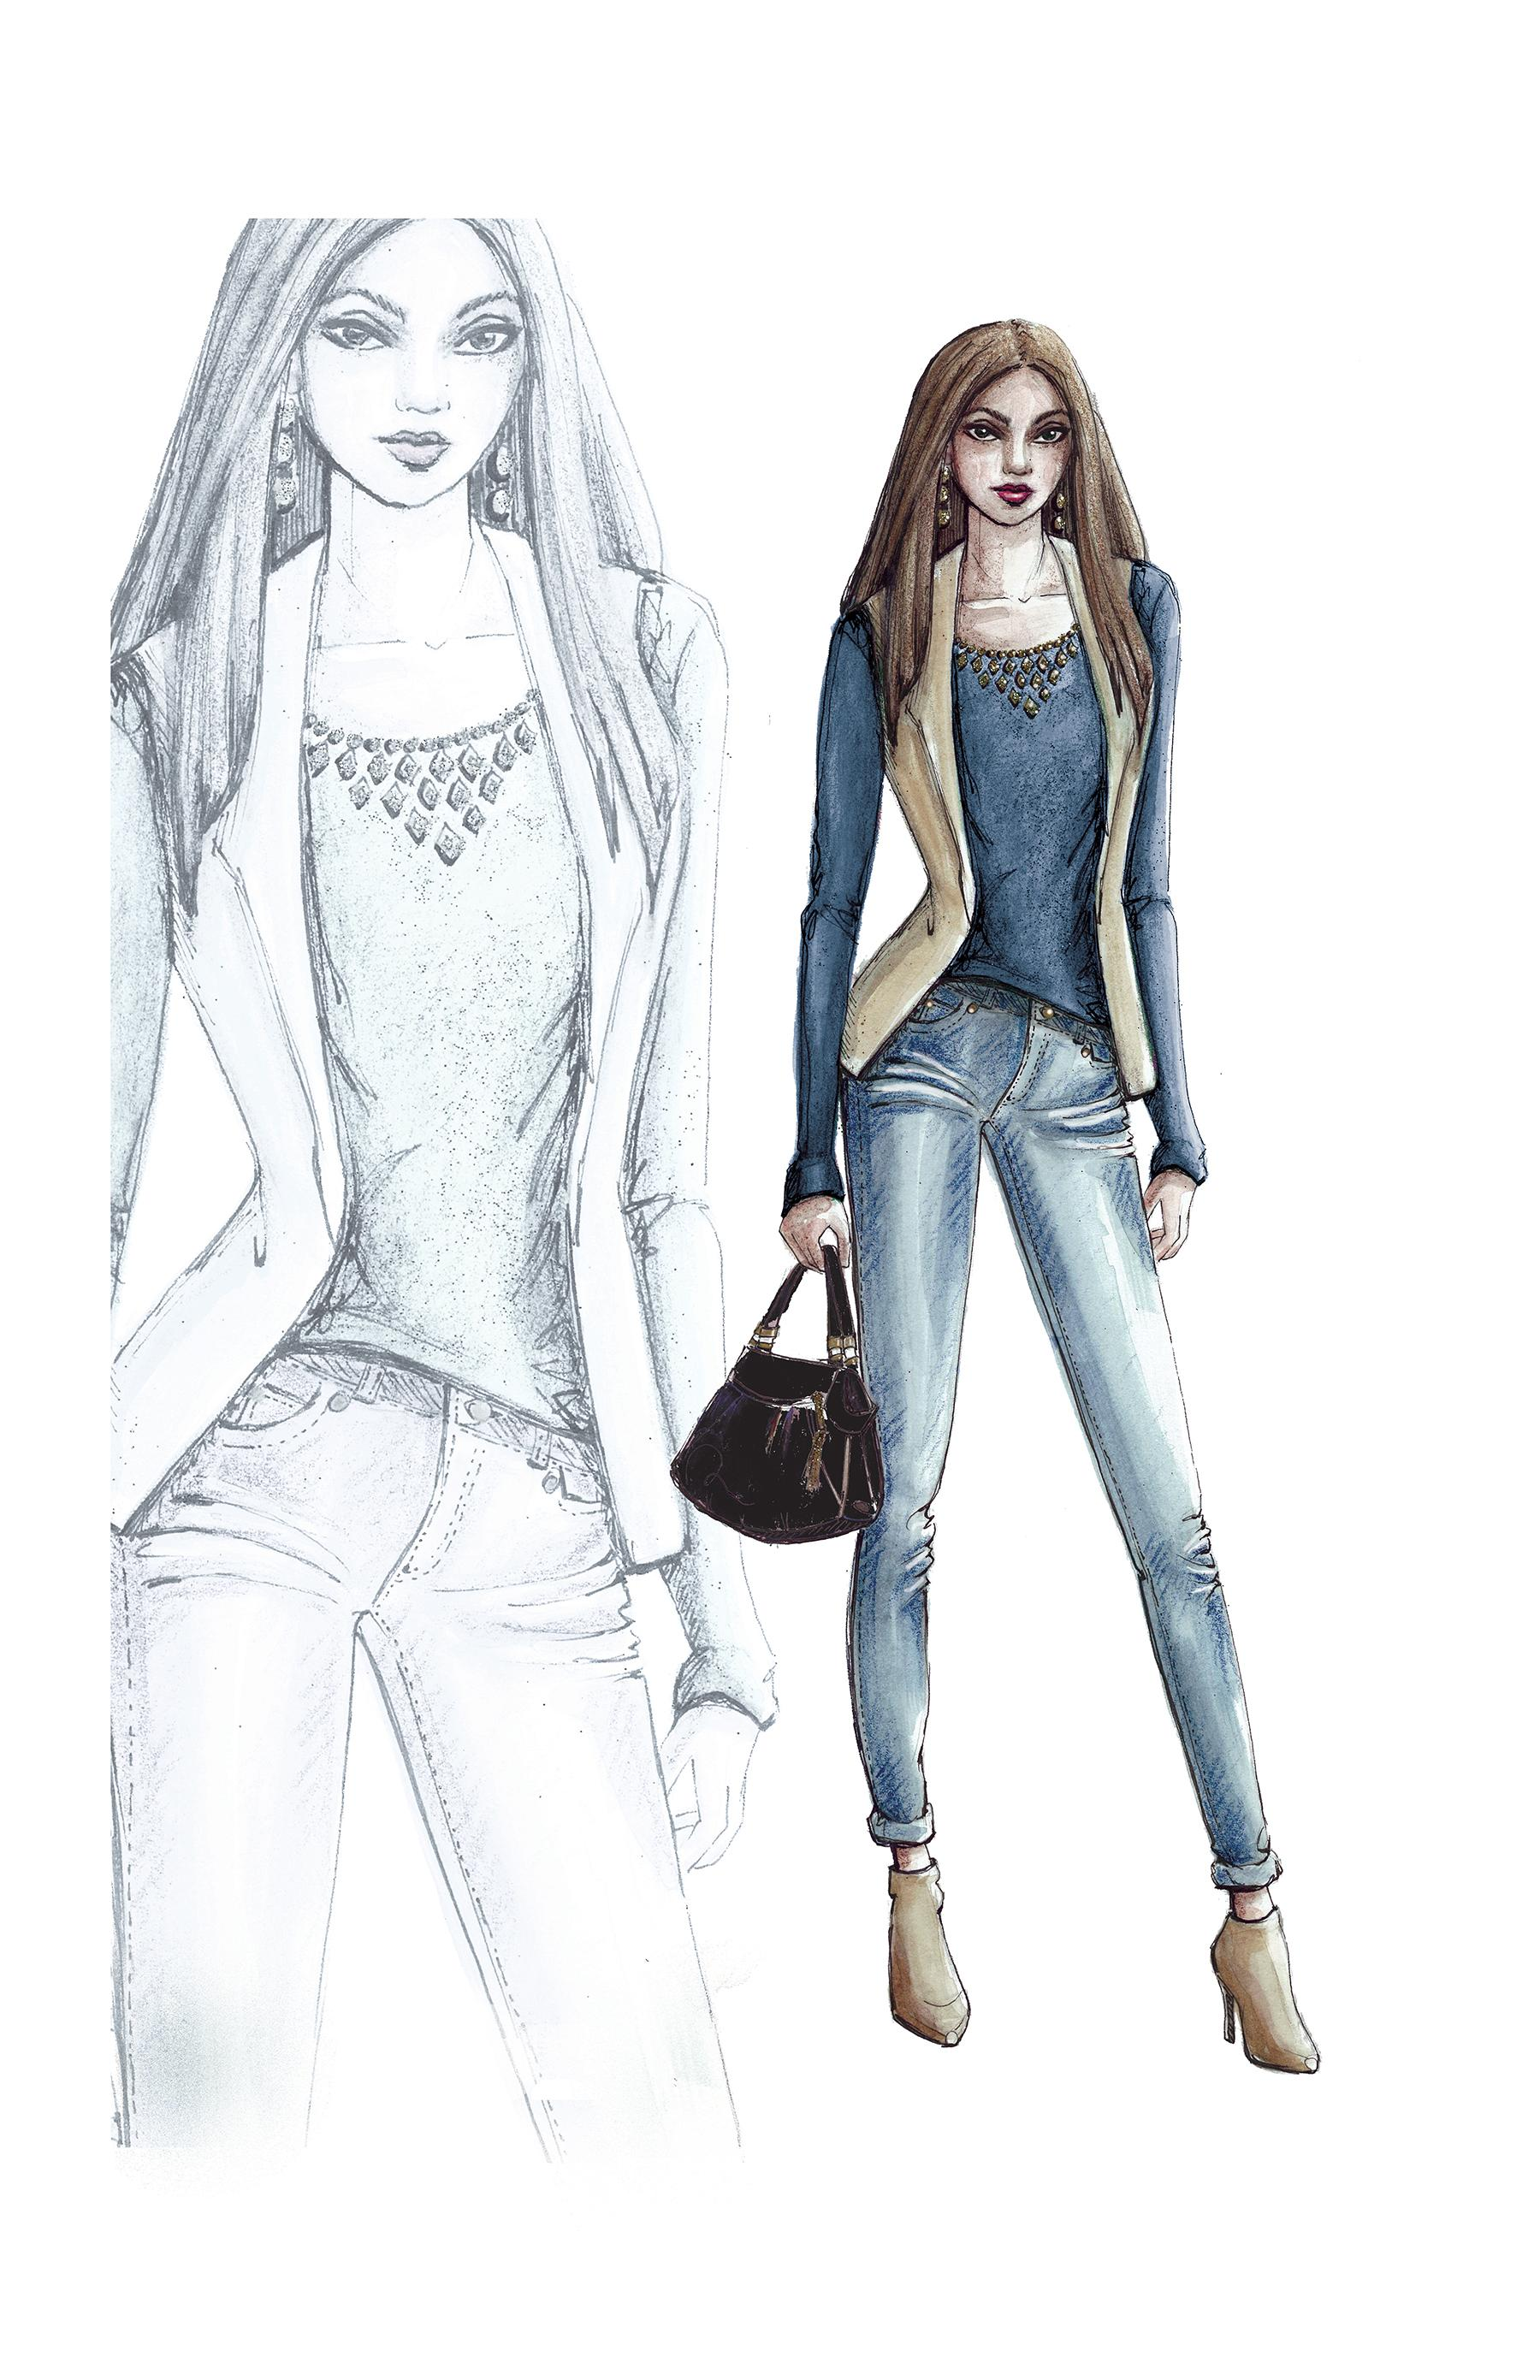 Illustrations - image 7 - student project